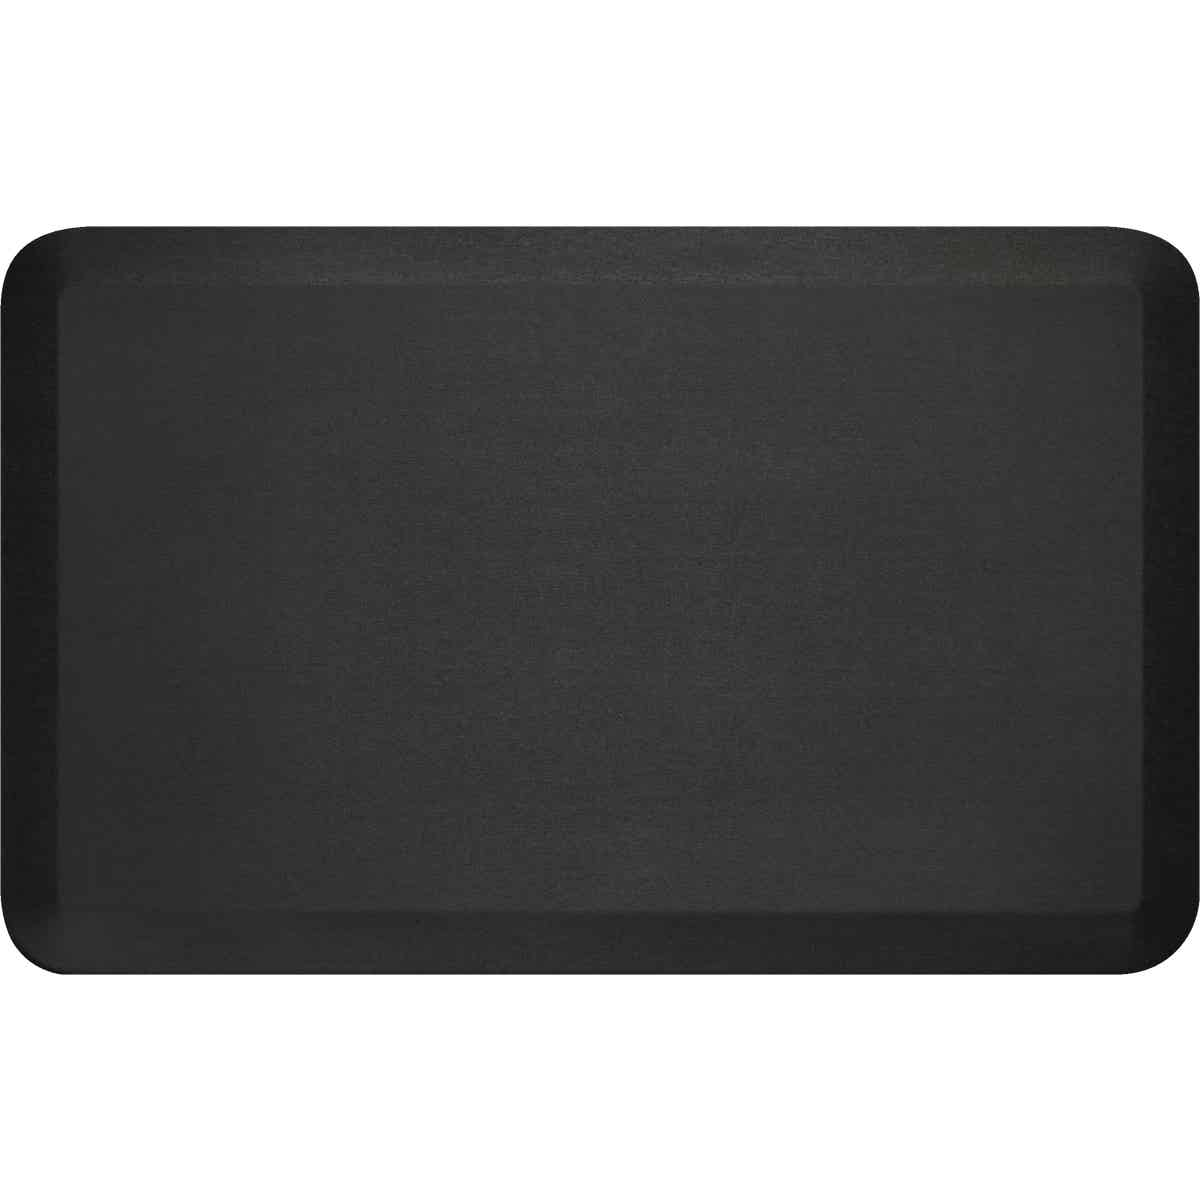 Mohawk Home 18 In French Cottage Boutique Kitchen Anti-Fatigue Mat x 30 In